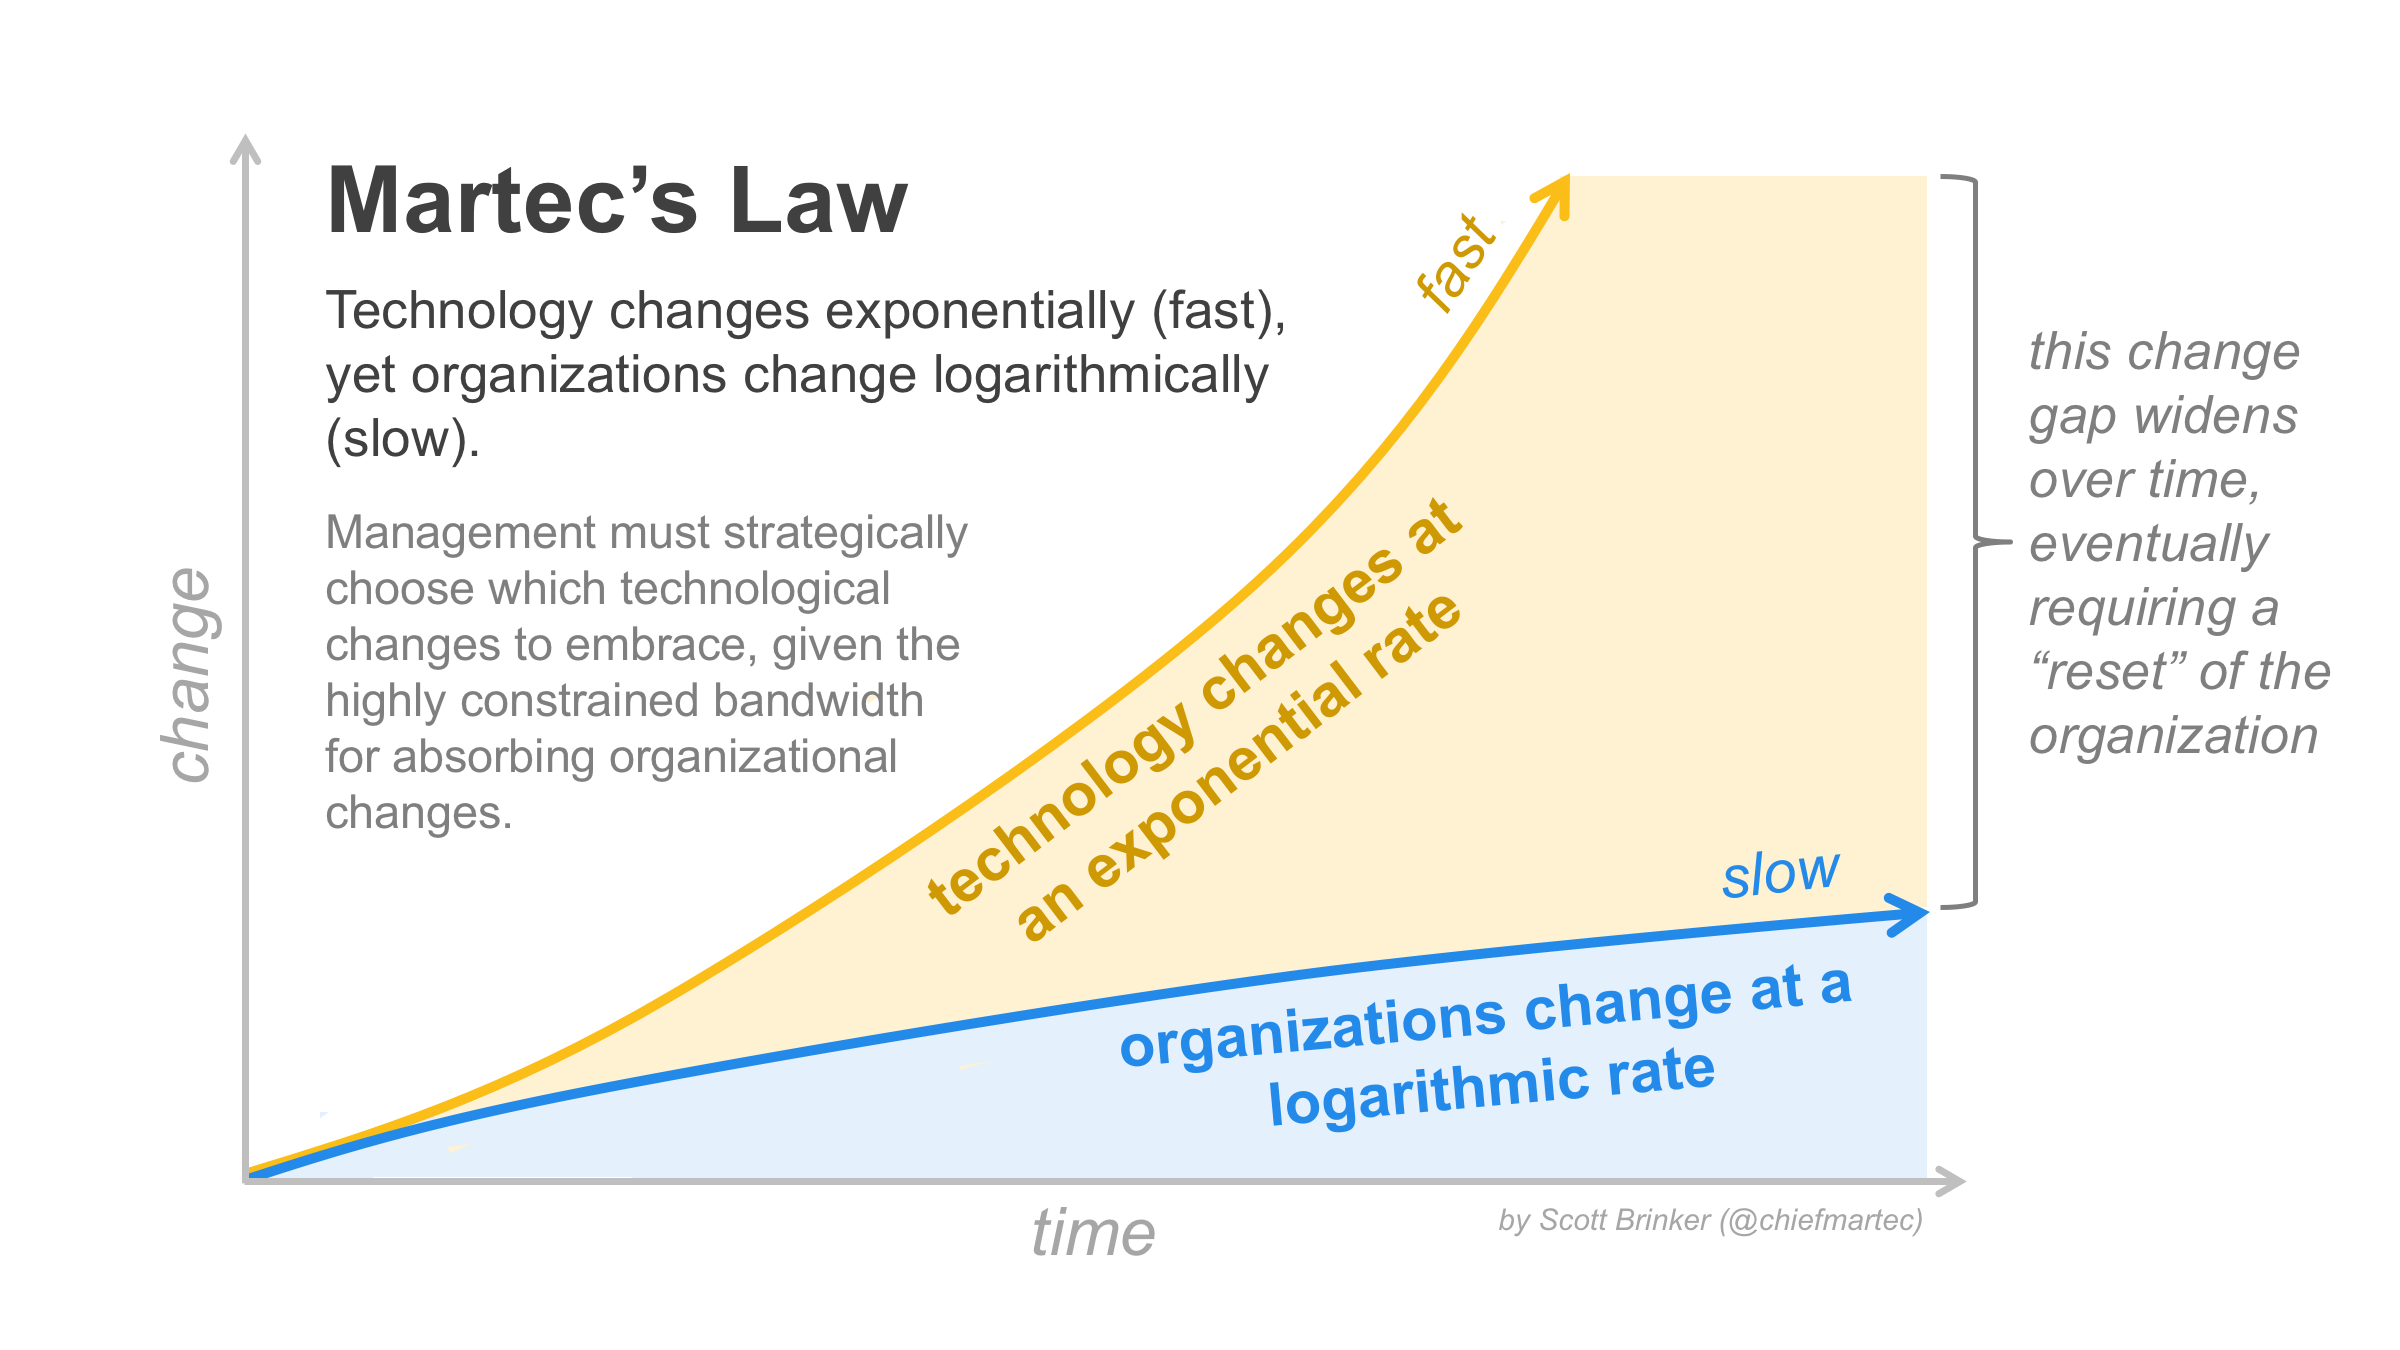 Martech's law: organizations change at a logarithmic rate, technology changes at an exponential rate